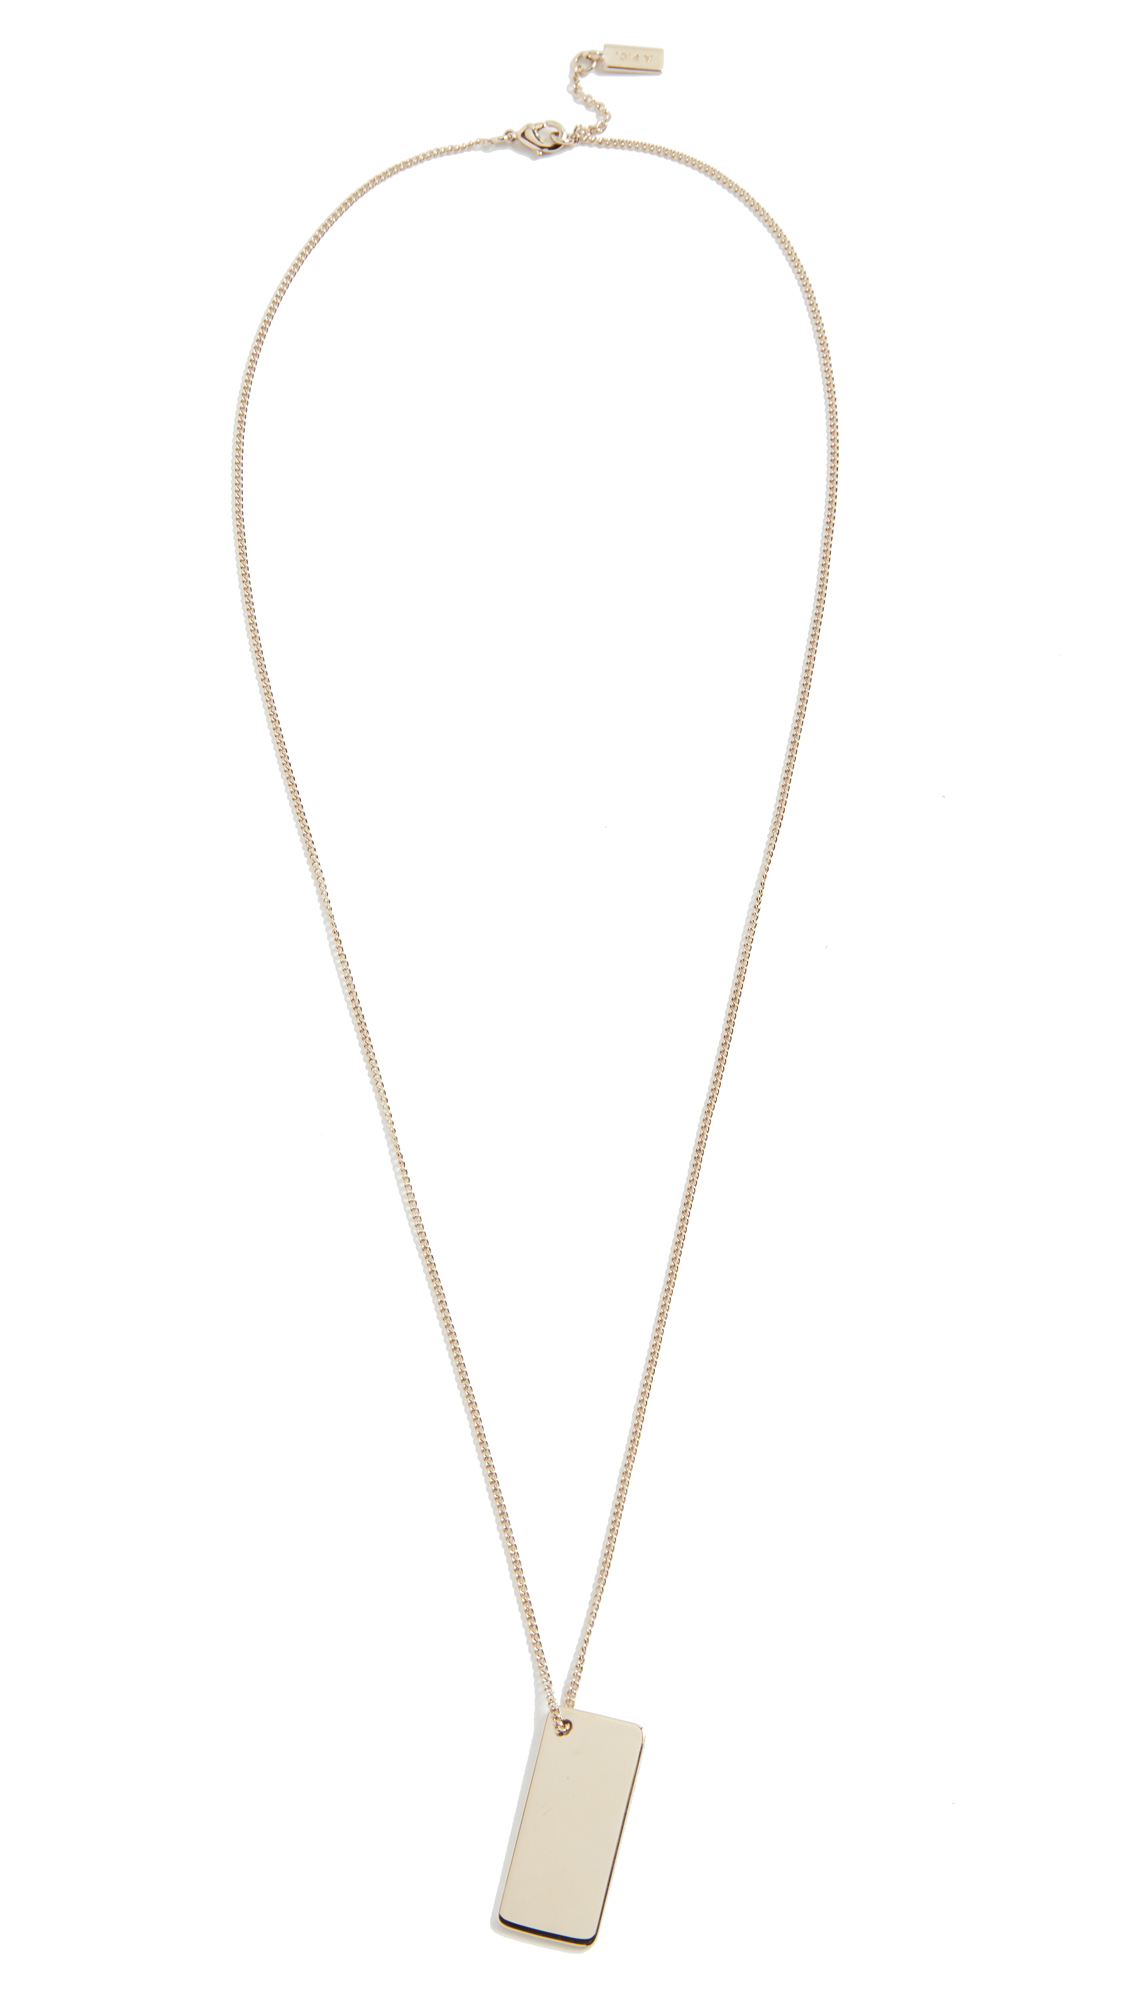 apc c mario argent bracelet in revolve dp p a necklace